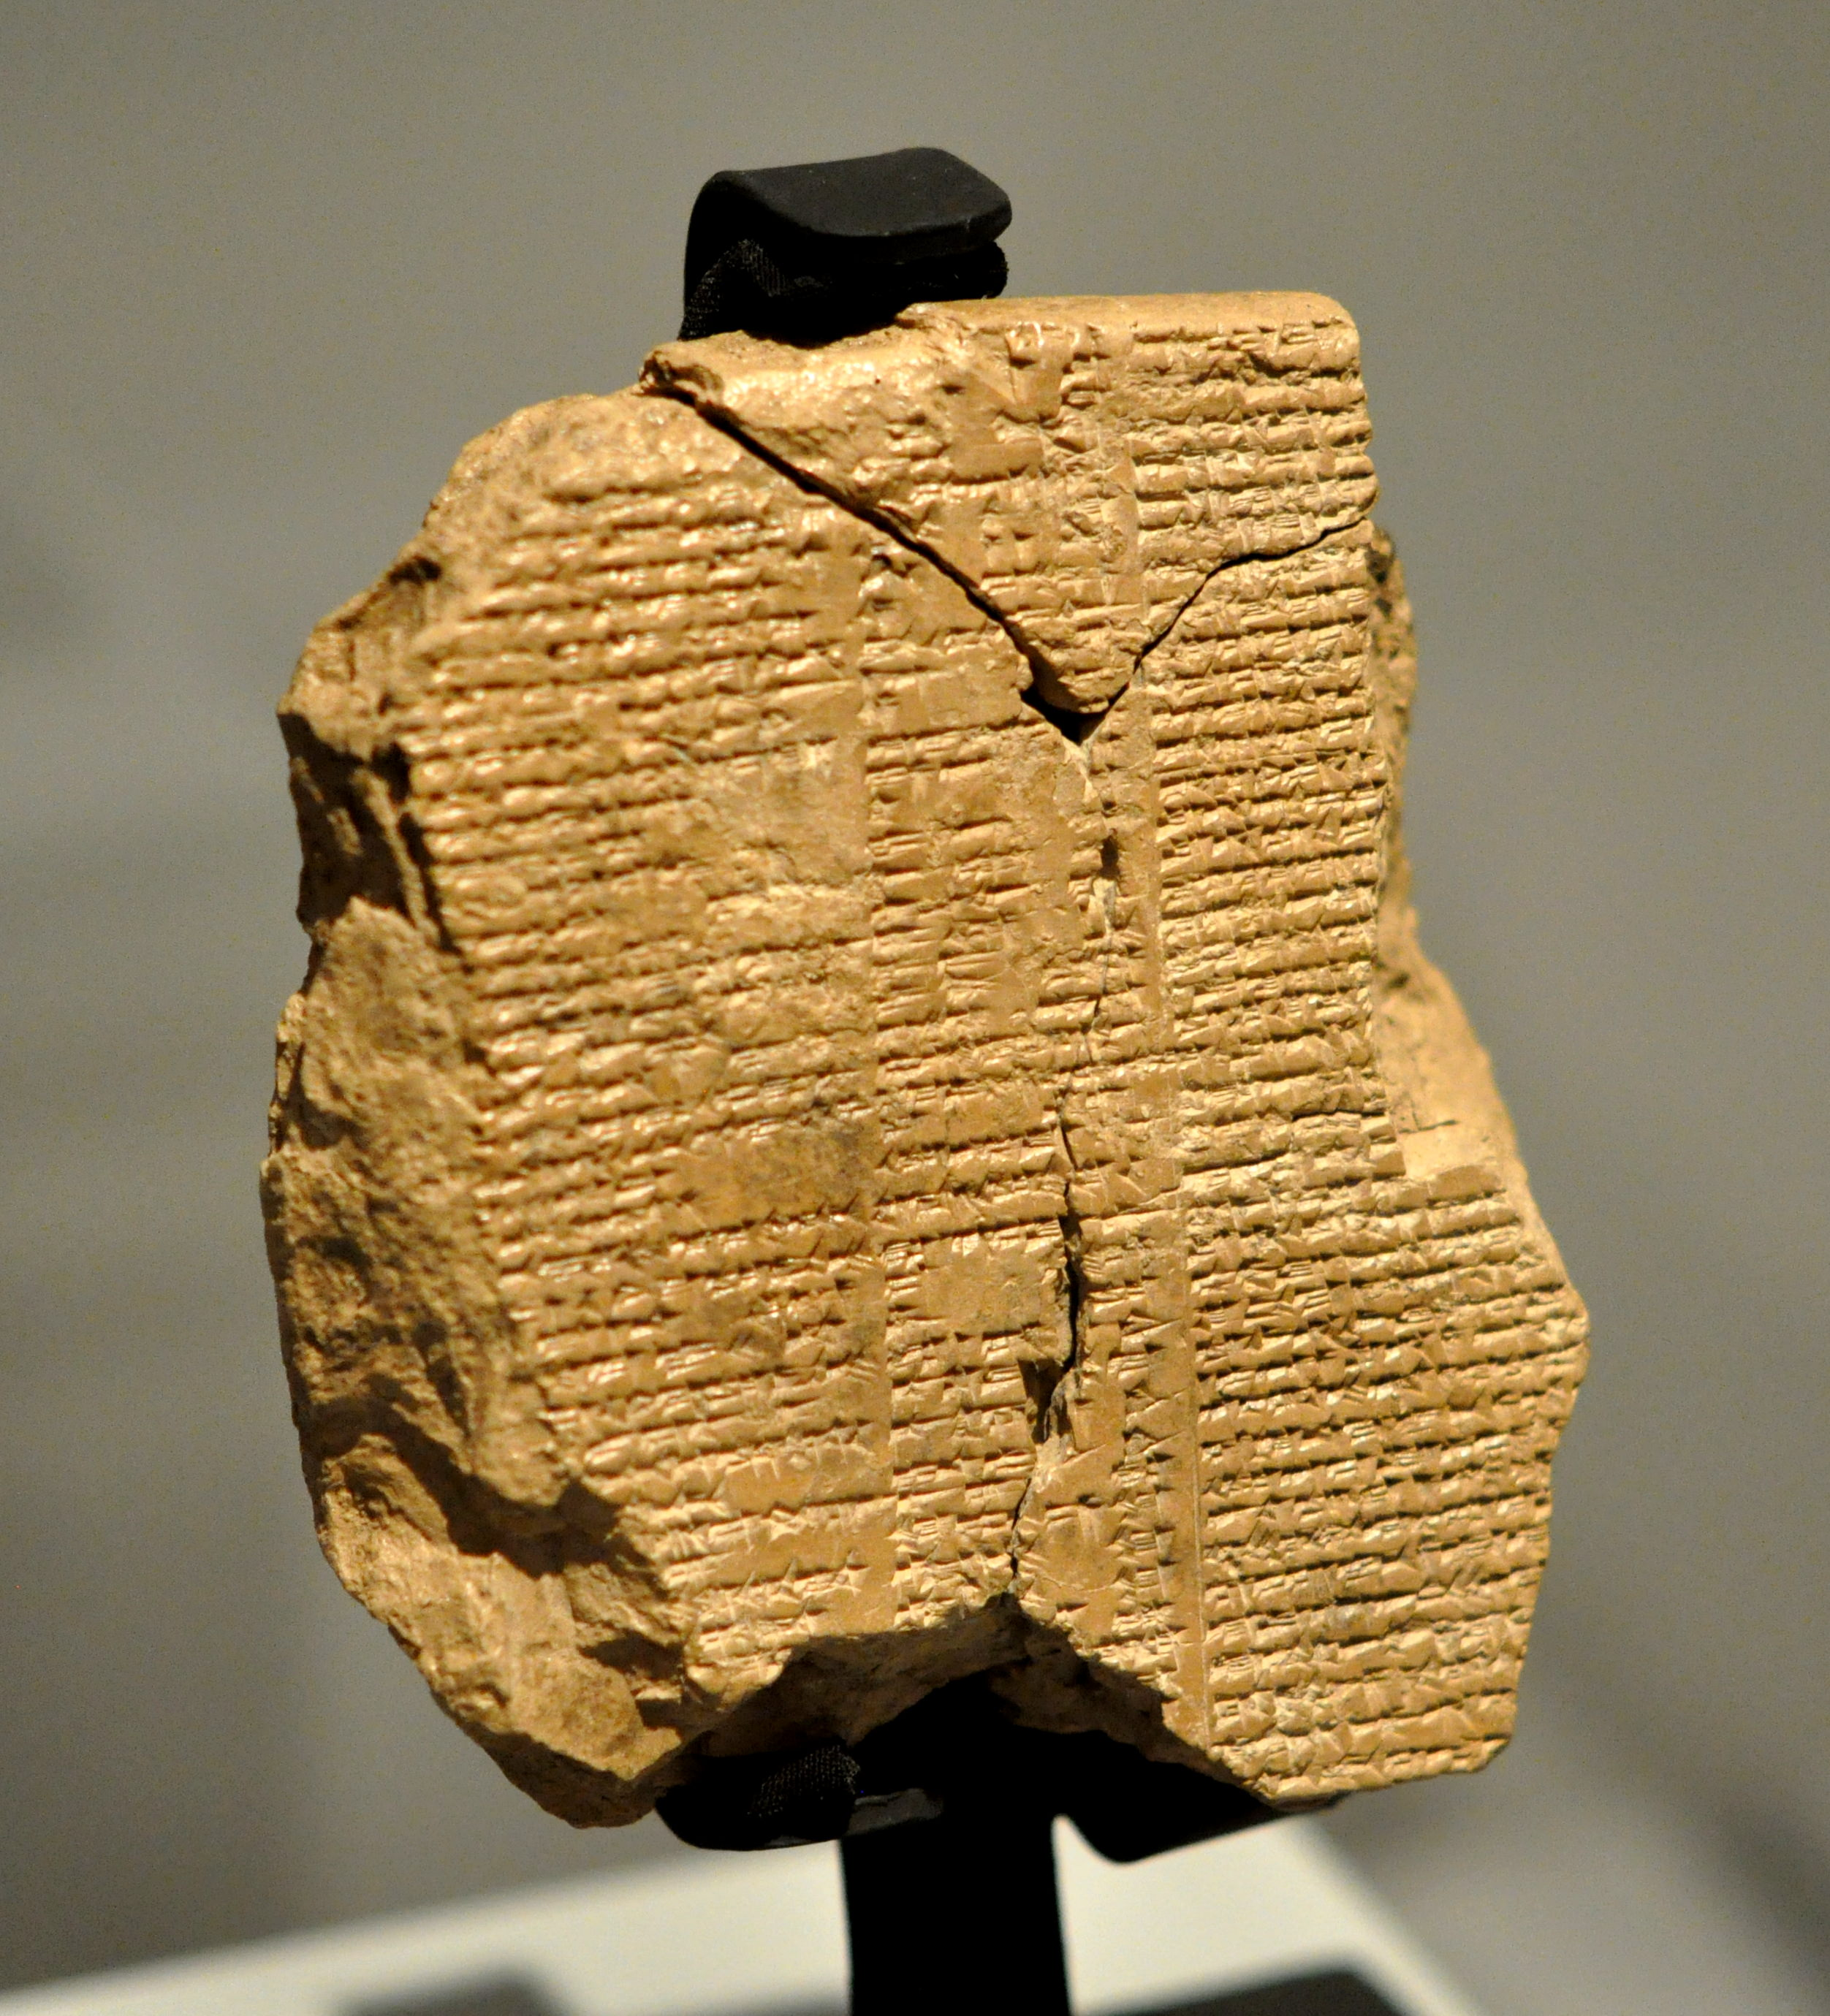 Part of Tablet V - Epic of Gilgamesh